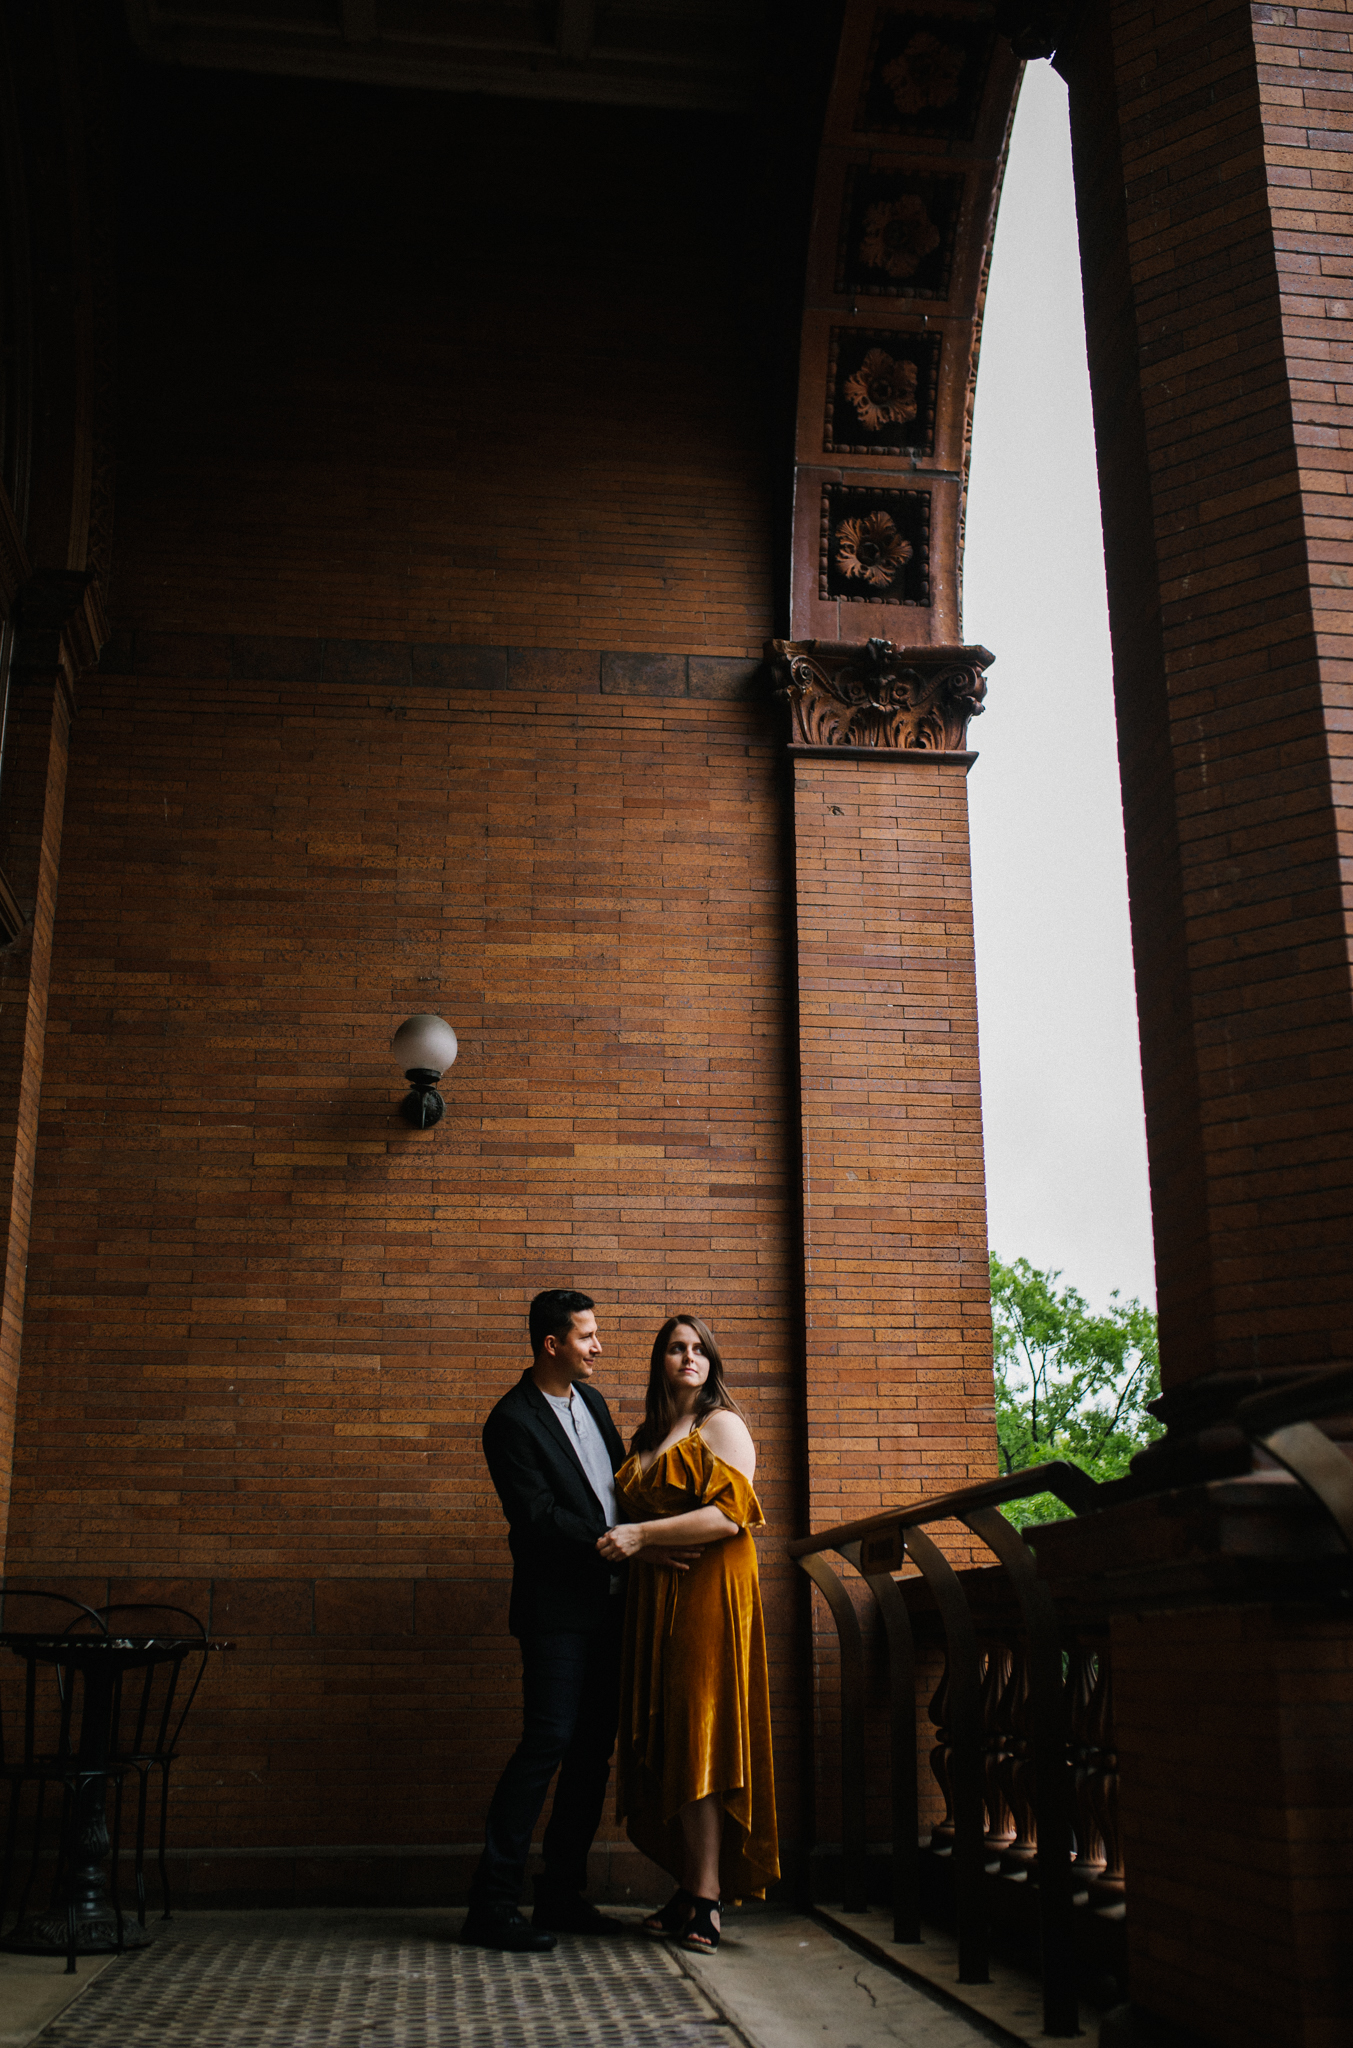 rachel_alex_richmond_engagement_session_mainstreetstation_rebeccaburtphotography-21.jpg